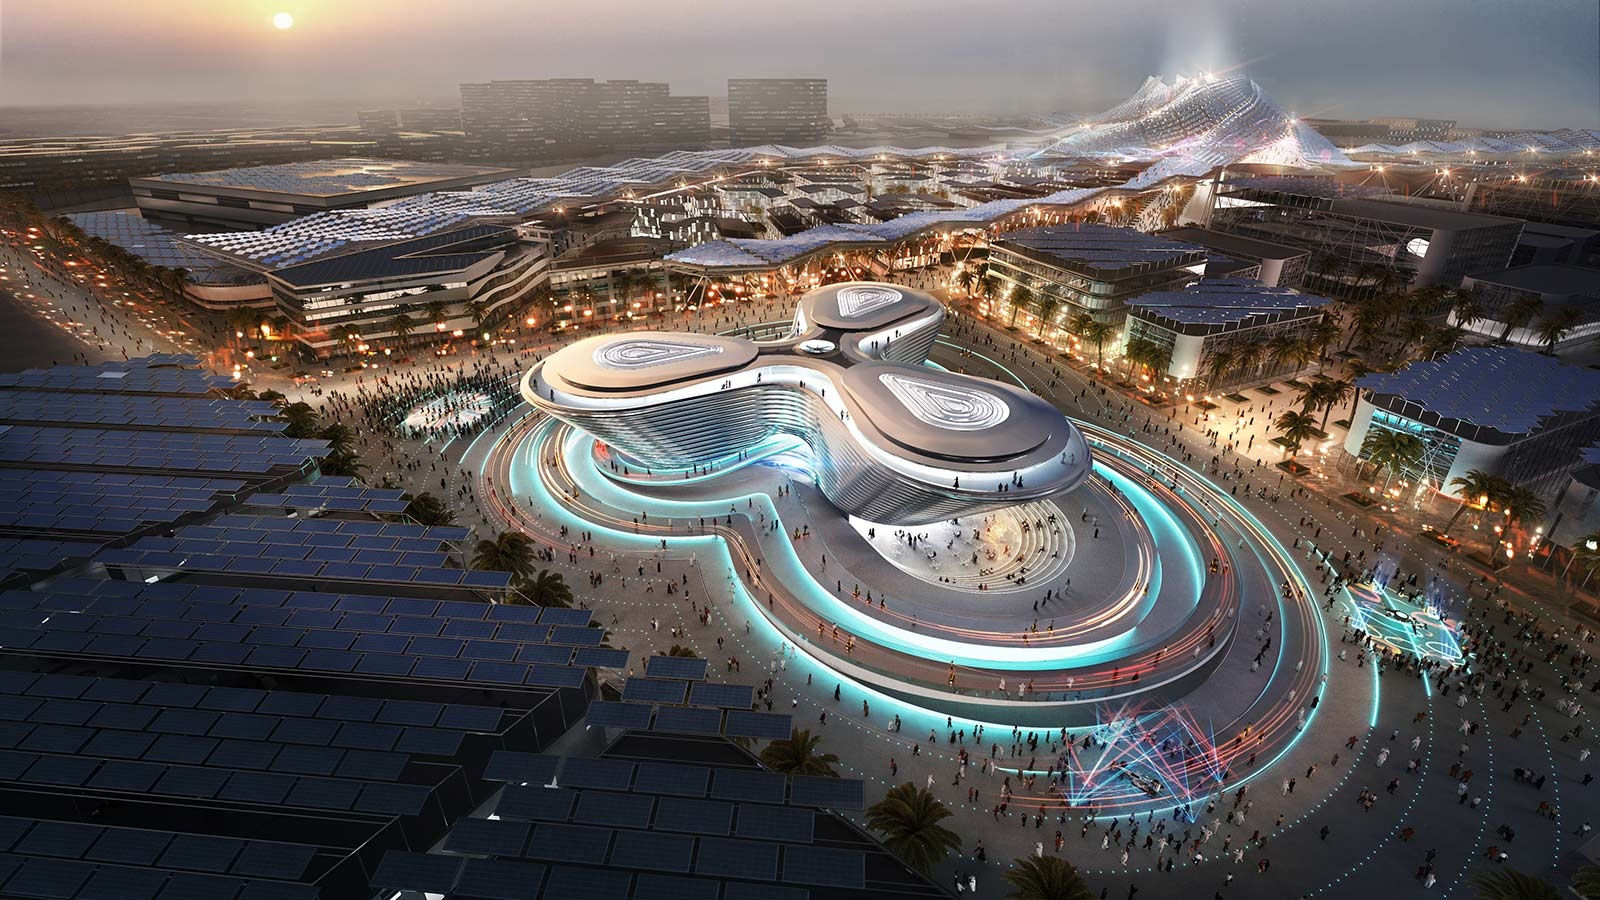 Aerial shot of the park at Expo 2020 Dubai